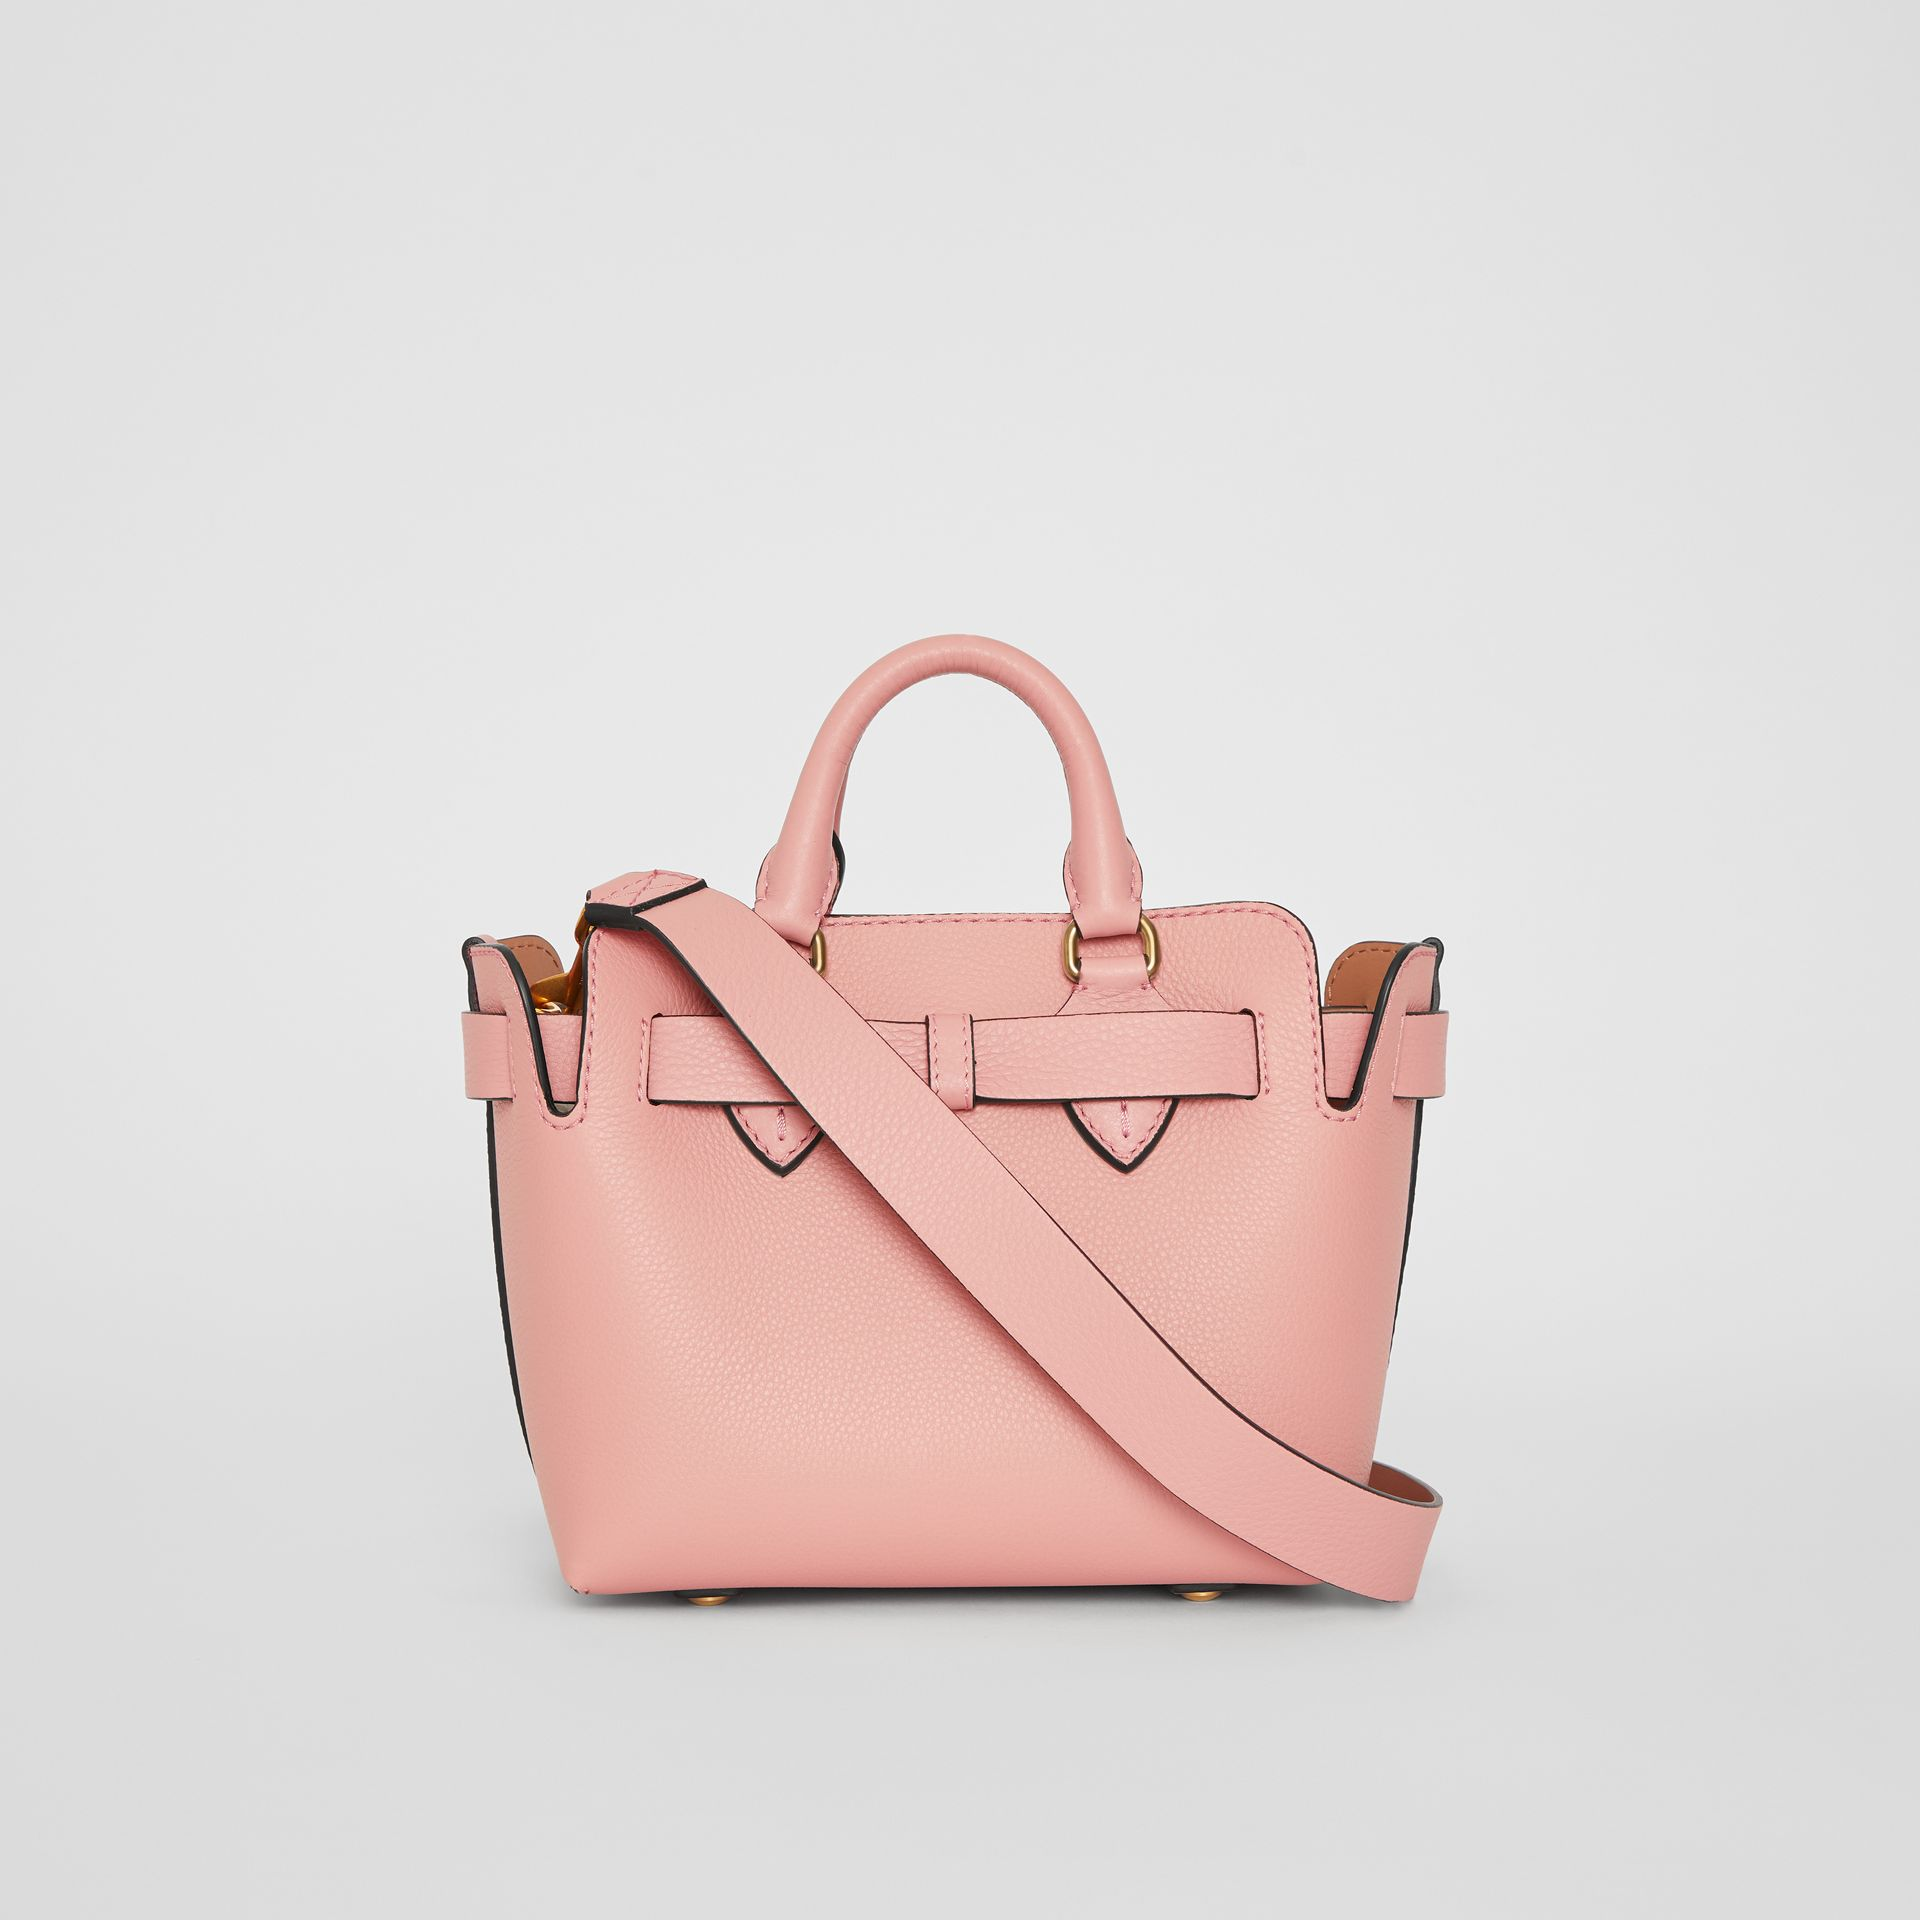 Borsa The Belt mini in pelle (Rosa Cenere) - Donna | Burberry - immagine della galleria 7